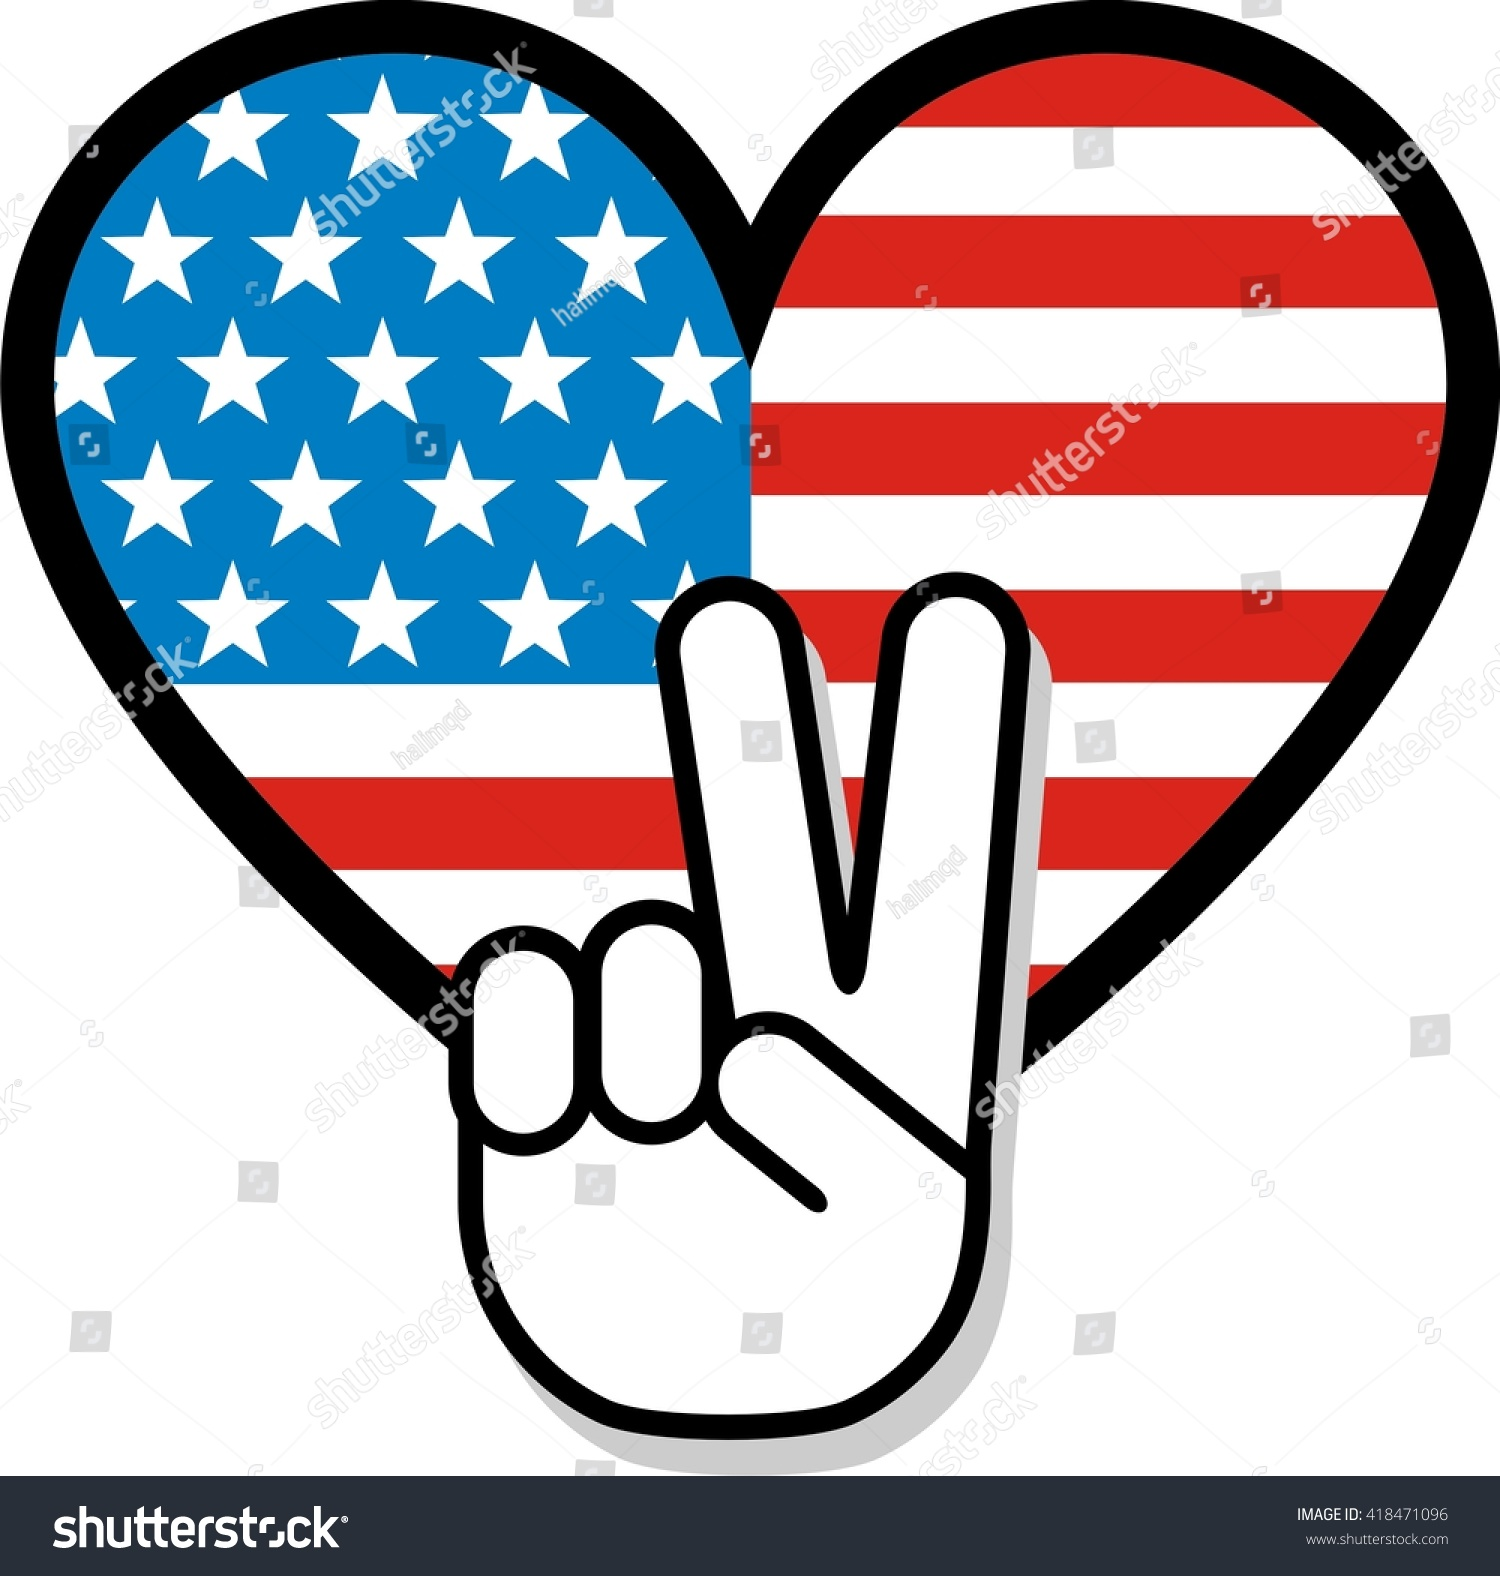 Peace Images Stock Photos amp Vectors  Shutterstock